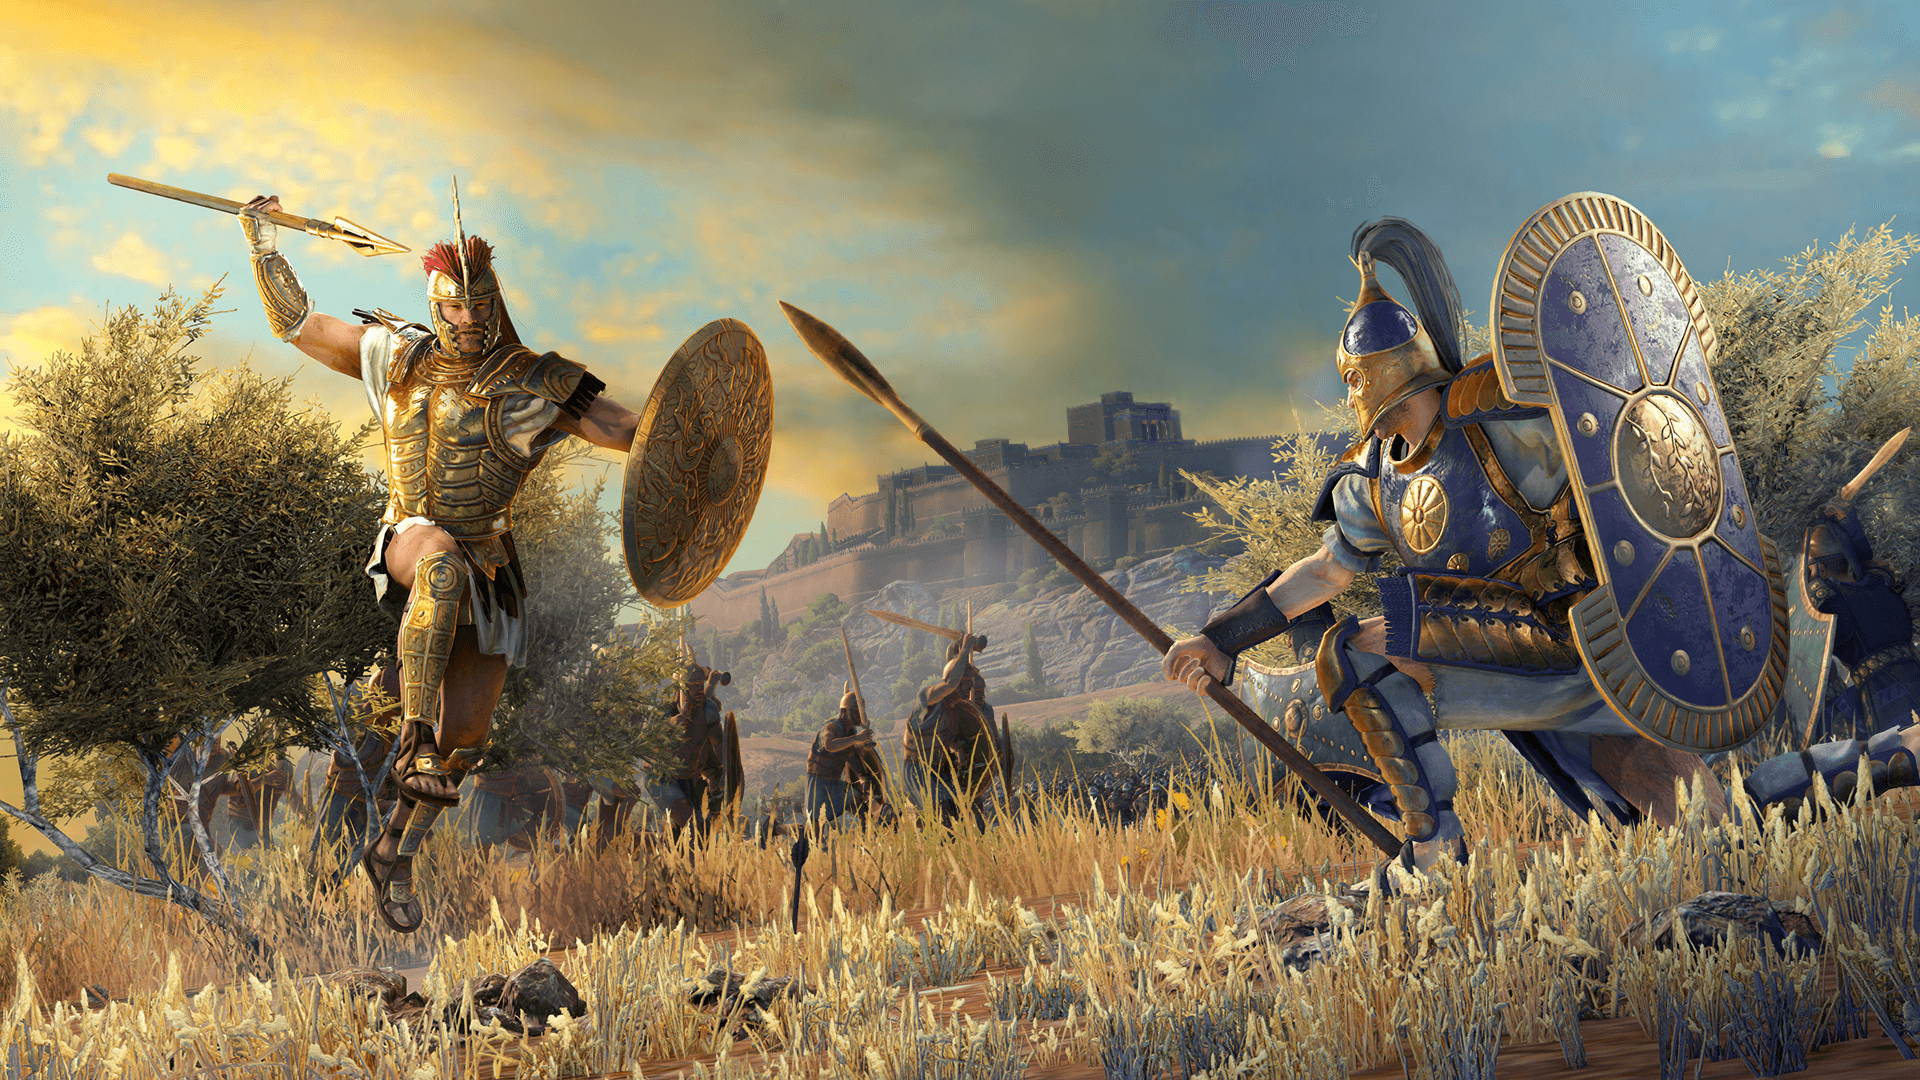 Total War Saga Troy gratuit sur Epic Games à son lancement